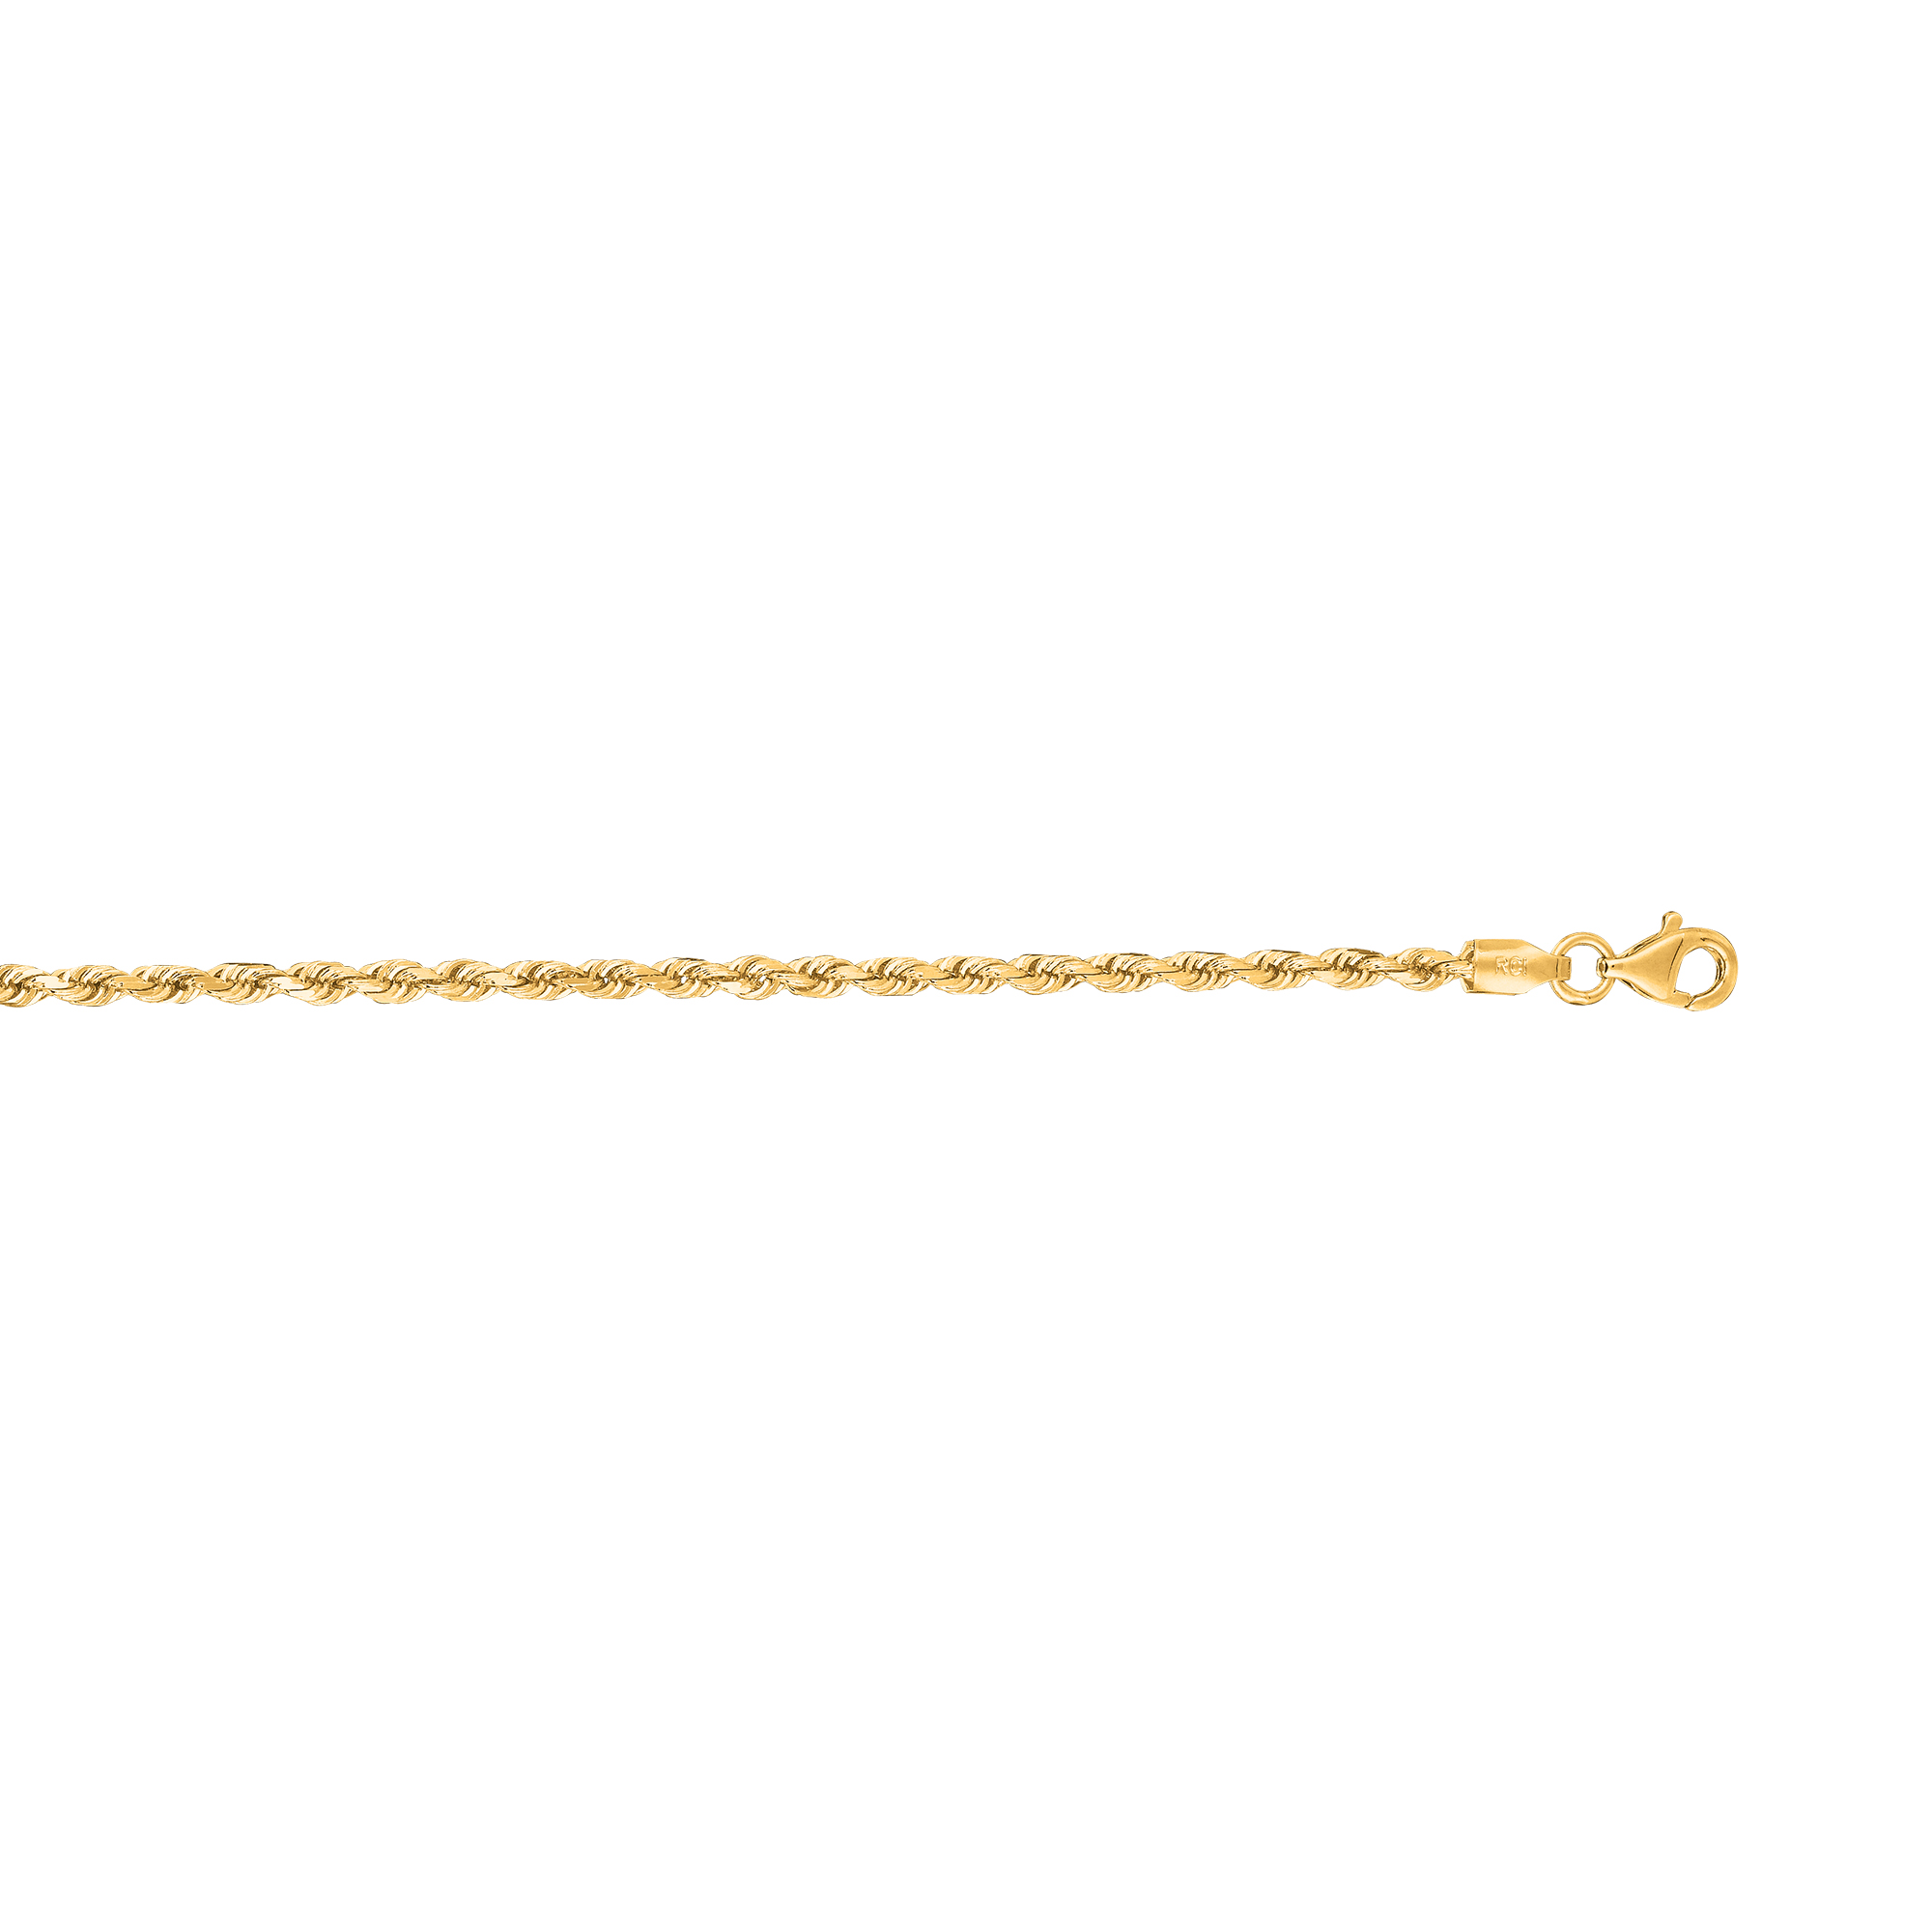 14kt 30 inches Yellow Gold 2.5mm Shiny Solid Diamond Cut Royal Rope Chain with Lobster Clasp